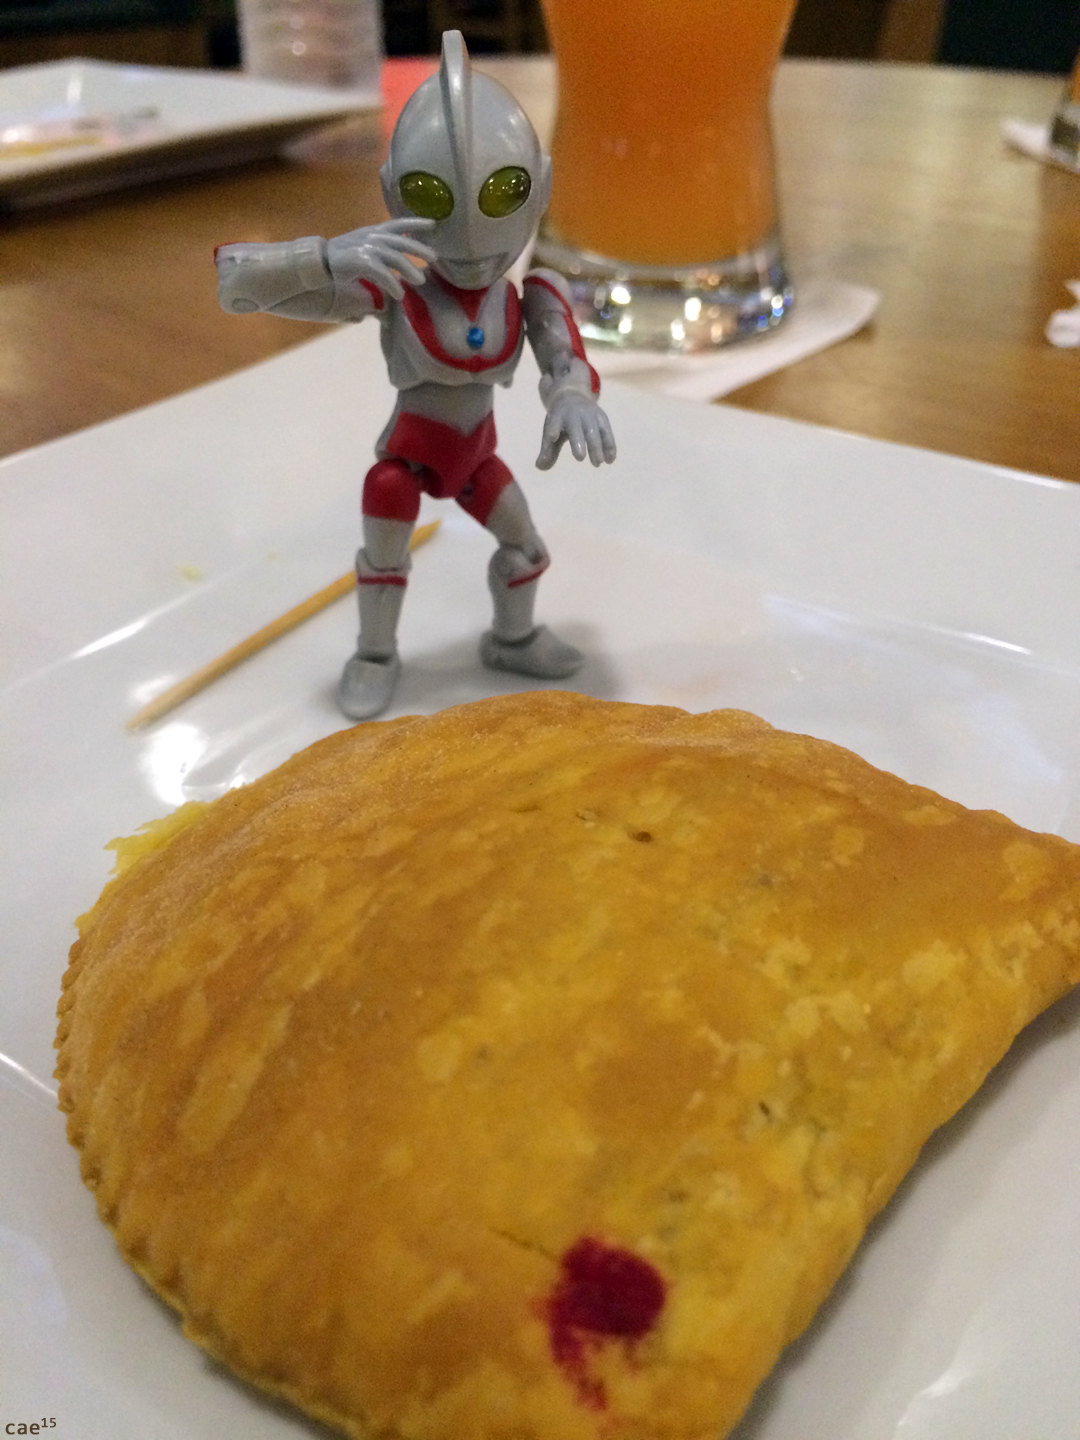 The last Jamaican patty - Ultraman Jamaica